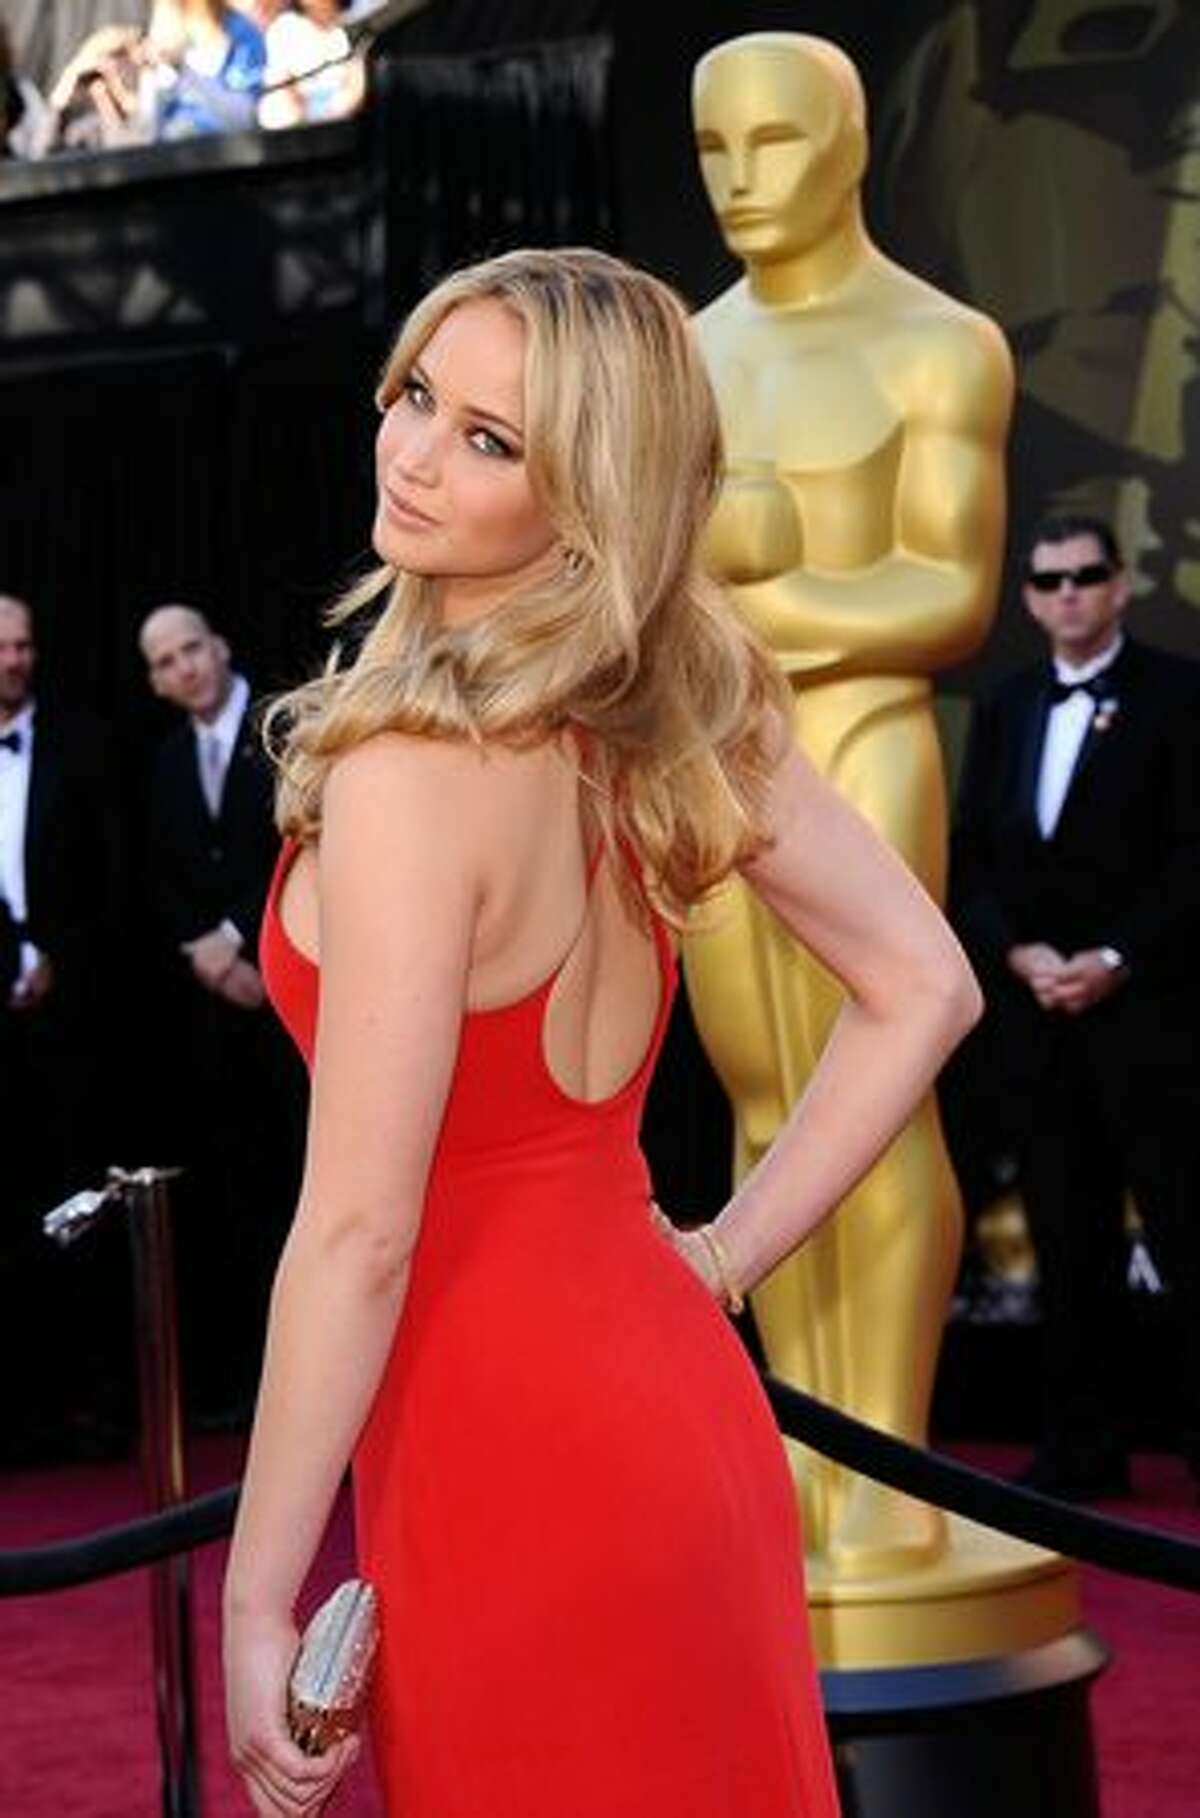 Actress Jennifer Lawrence arrives at the 83rd Annual Academy Awards held at the Kodak Theatre in Hollywood, California.